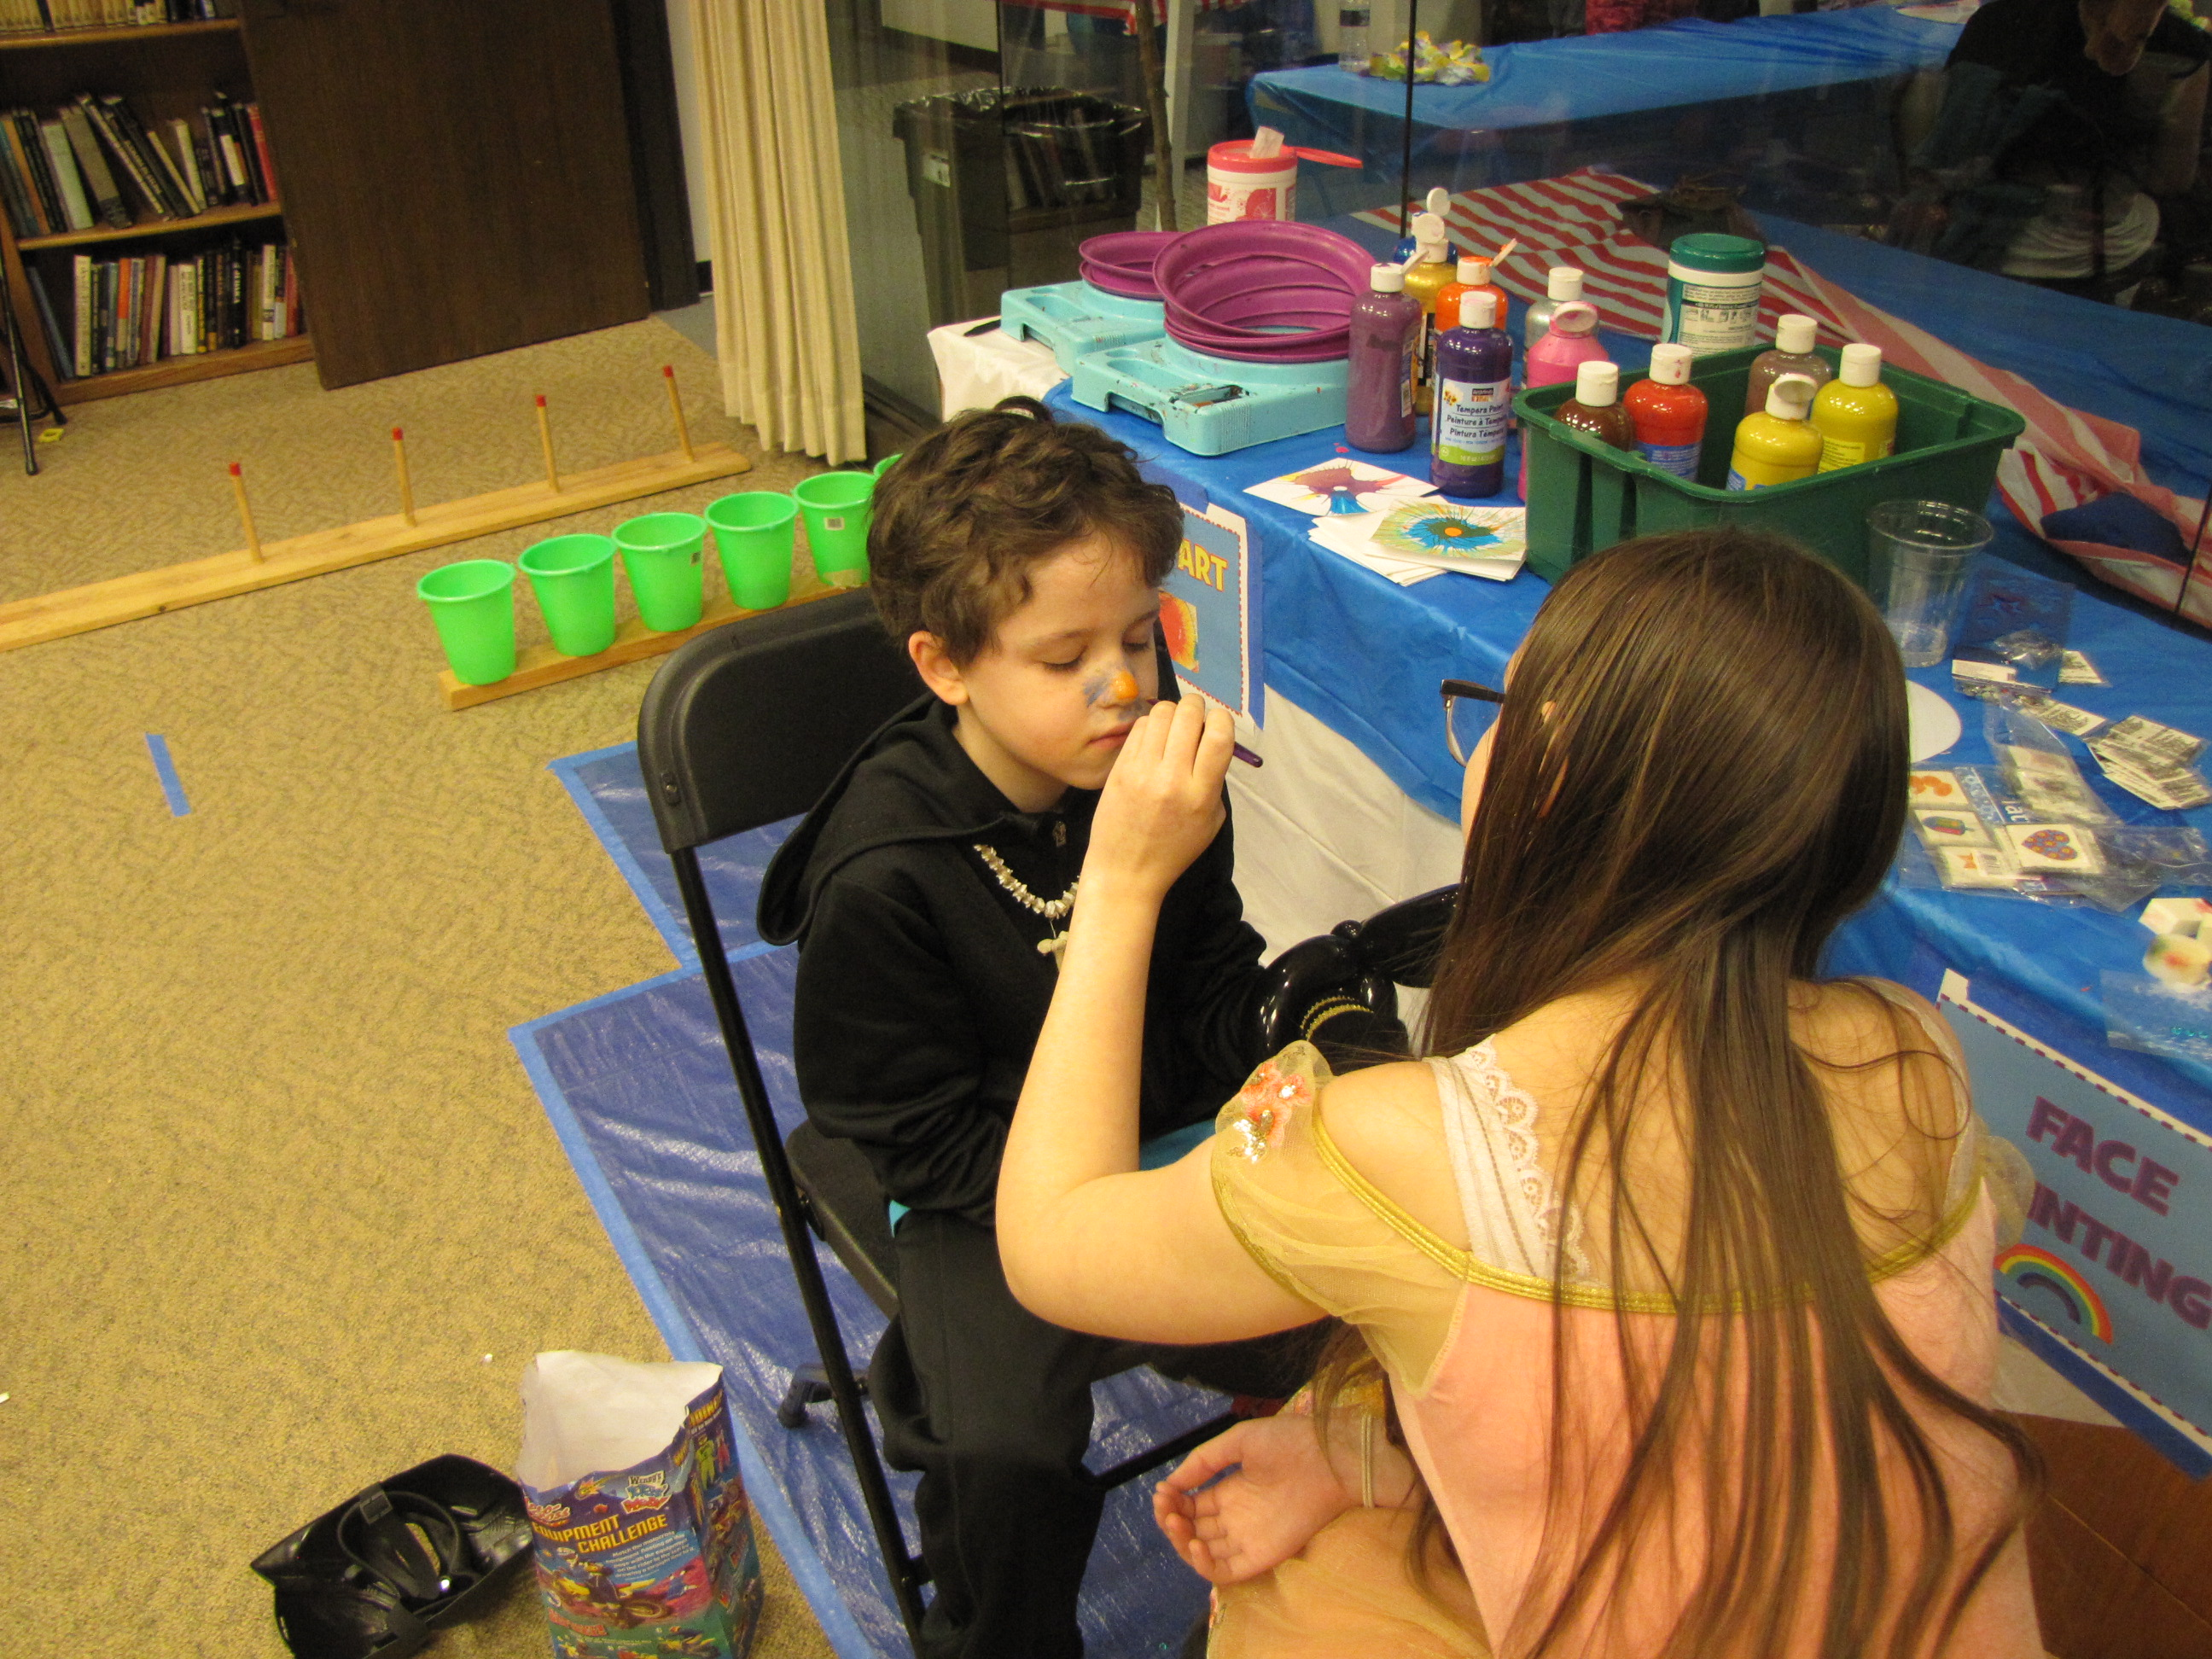 Purim face painting